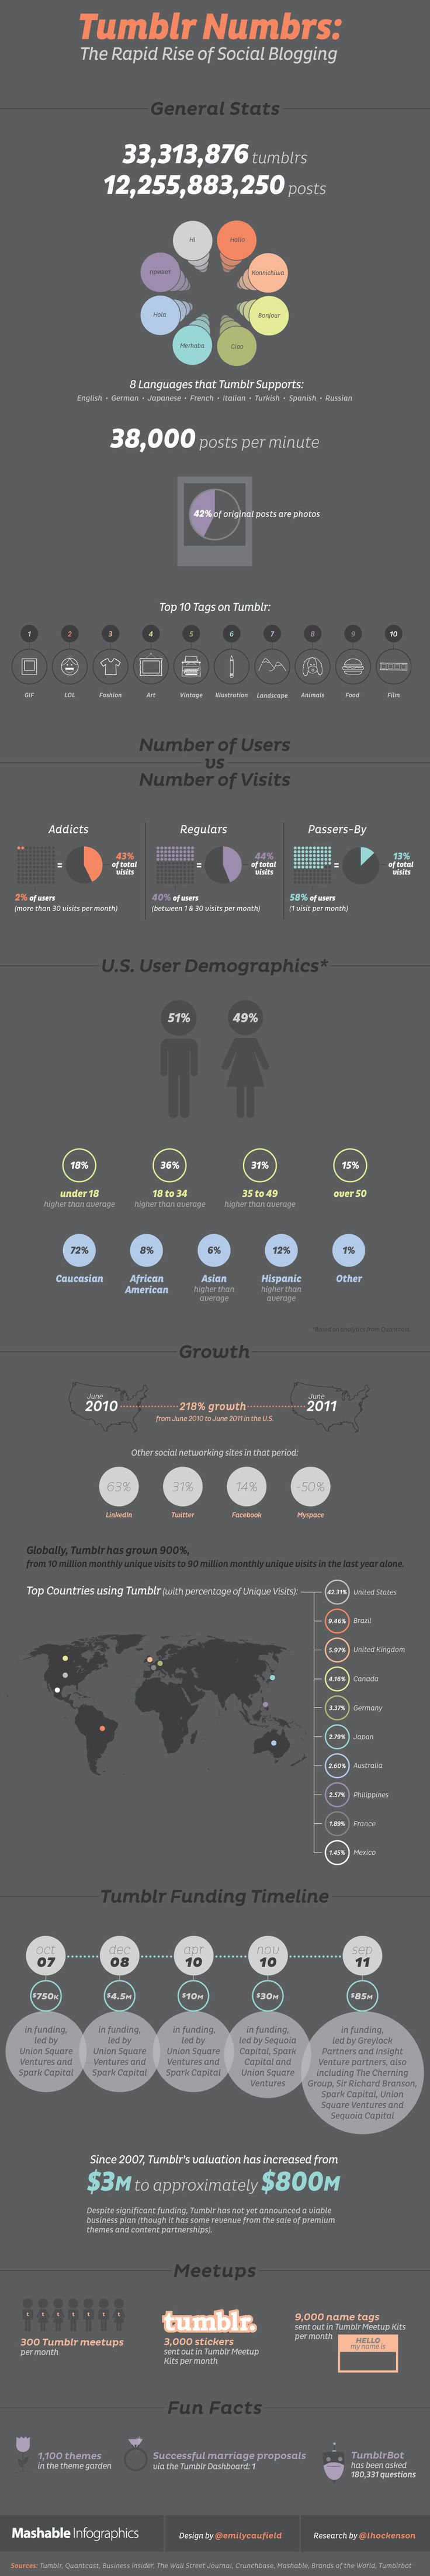 Tumblr the rapid rise of social blogging